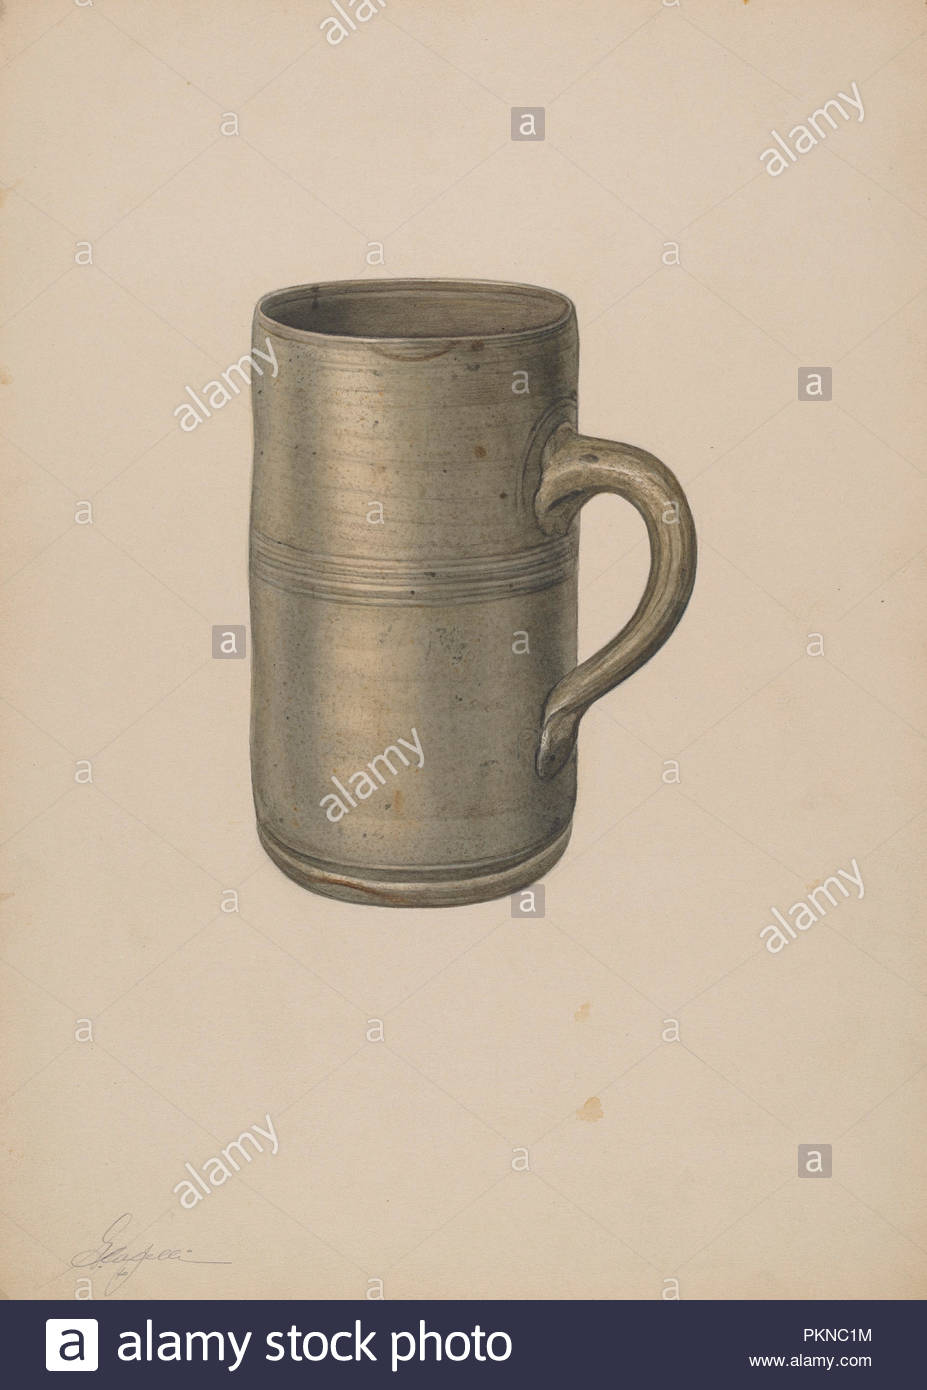 10 In Cm Mug Dated C 1940 Dimensions Overall 35 4 X 25 4 Cm 13 15 16